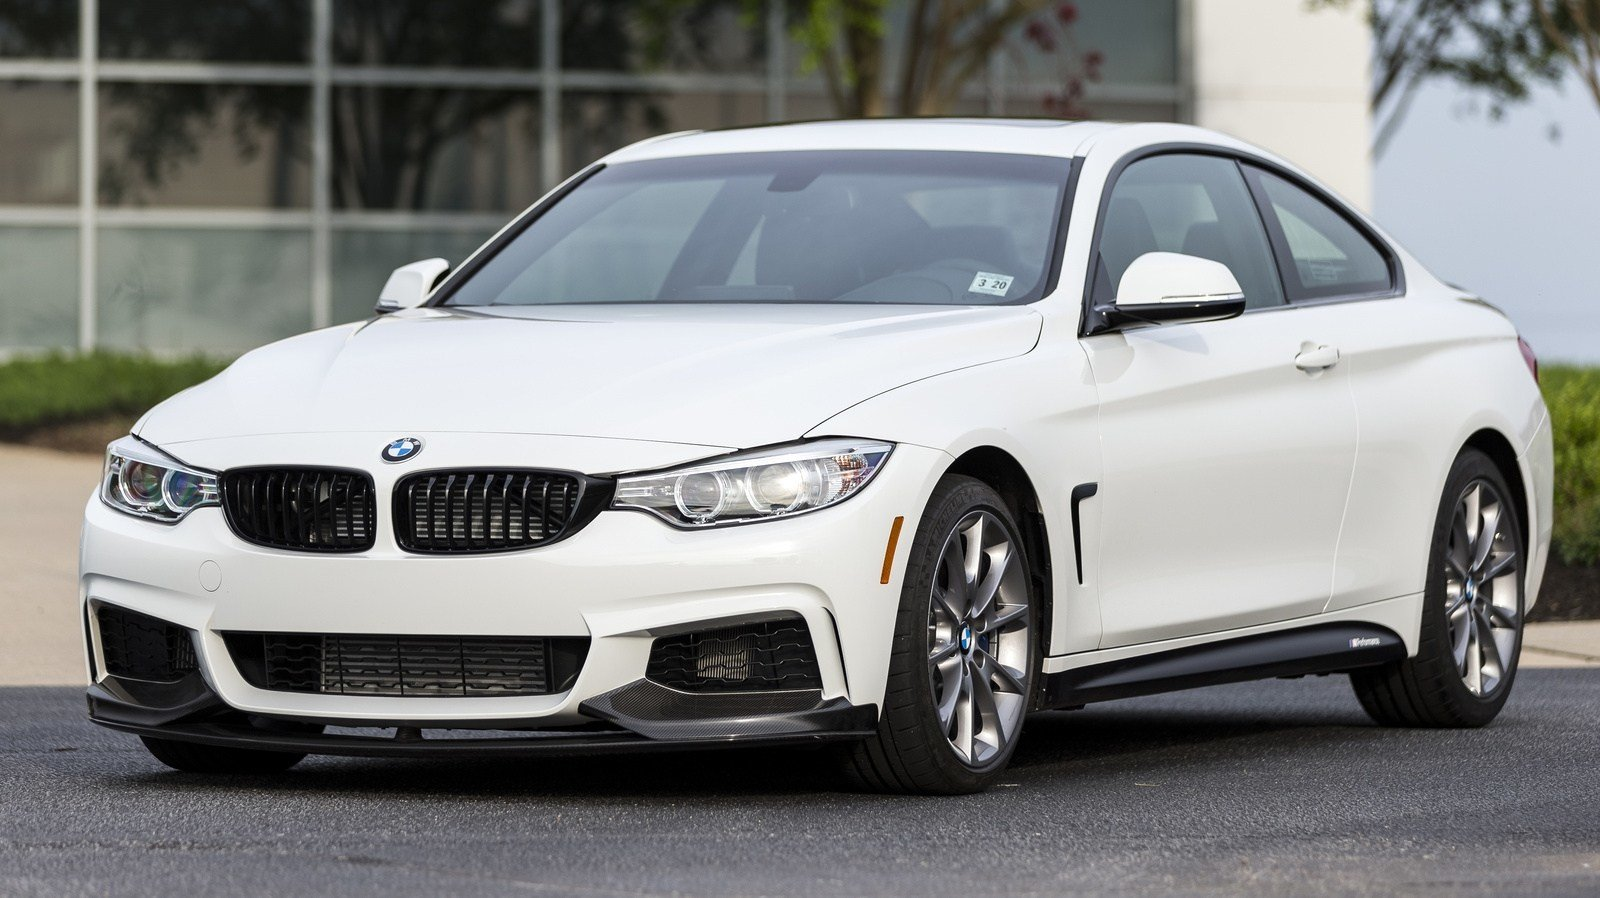 Latest 2016 Bmw 4 Series Prices Auto Car Update Free Download